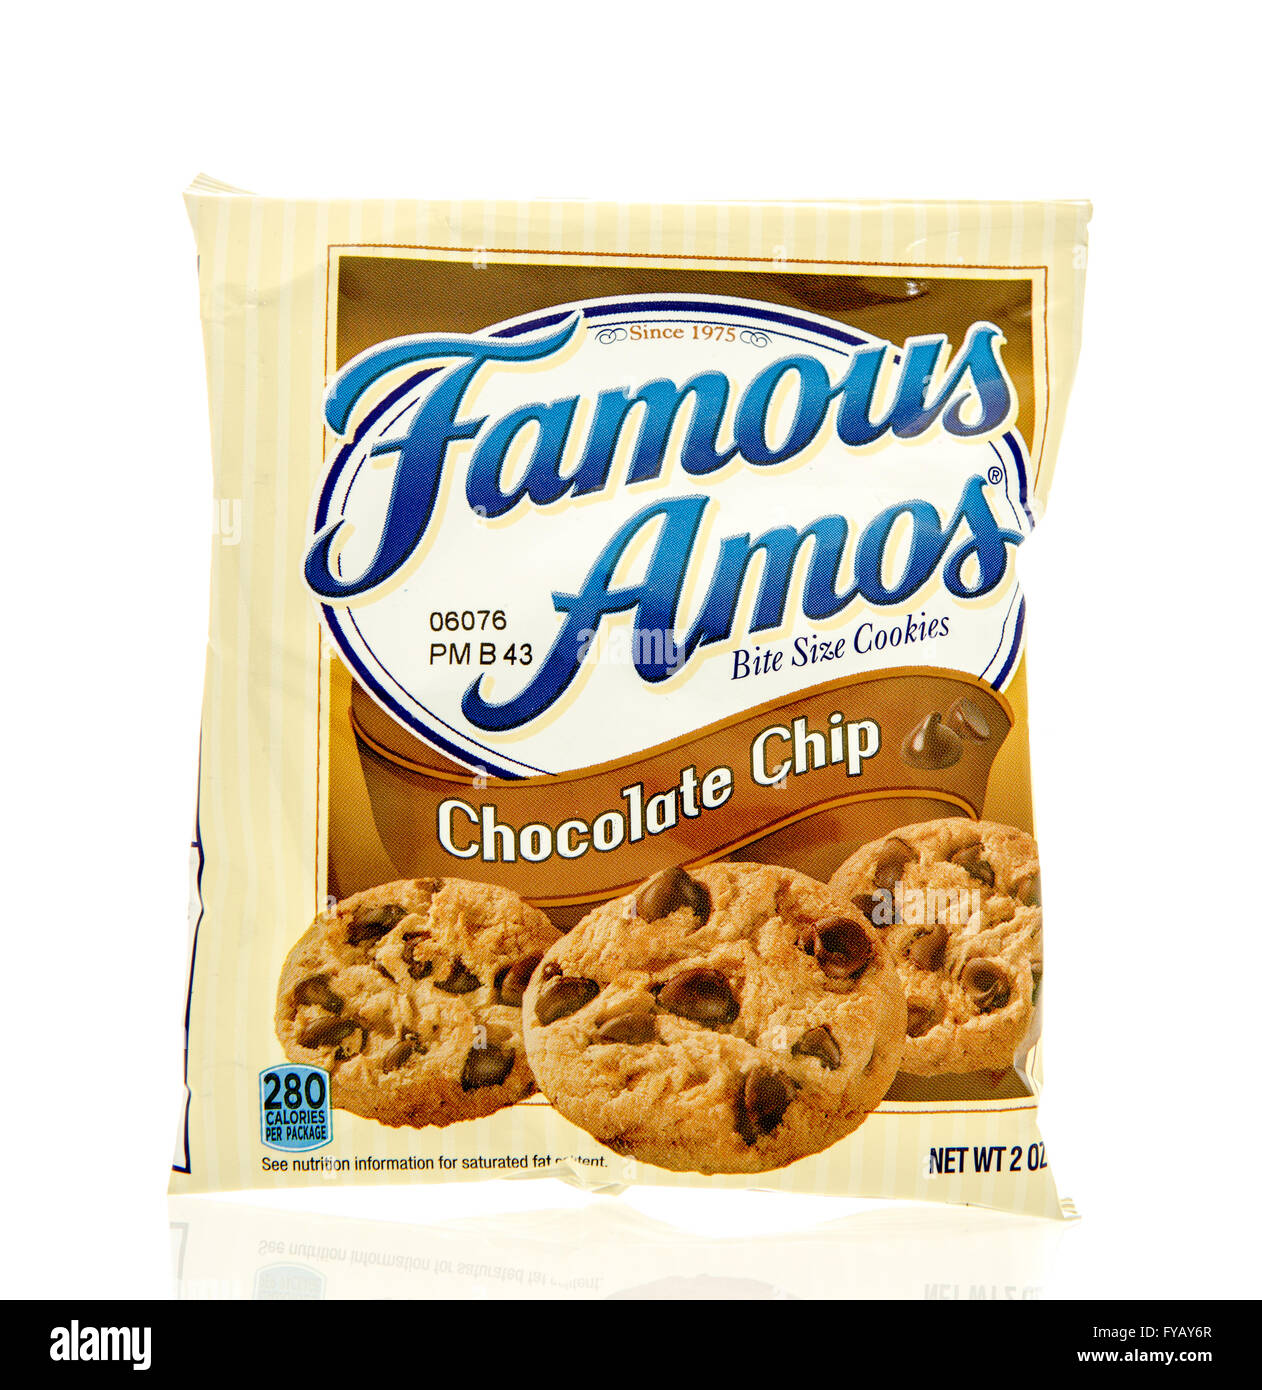 Famous Chocolate Chip Cookies Brands